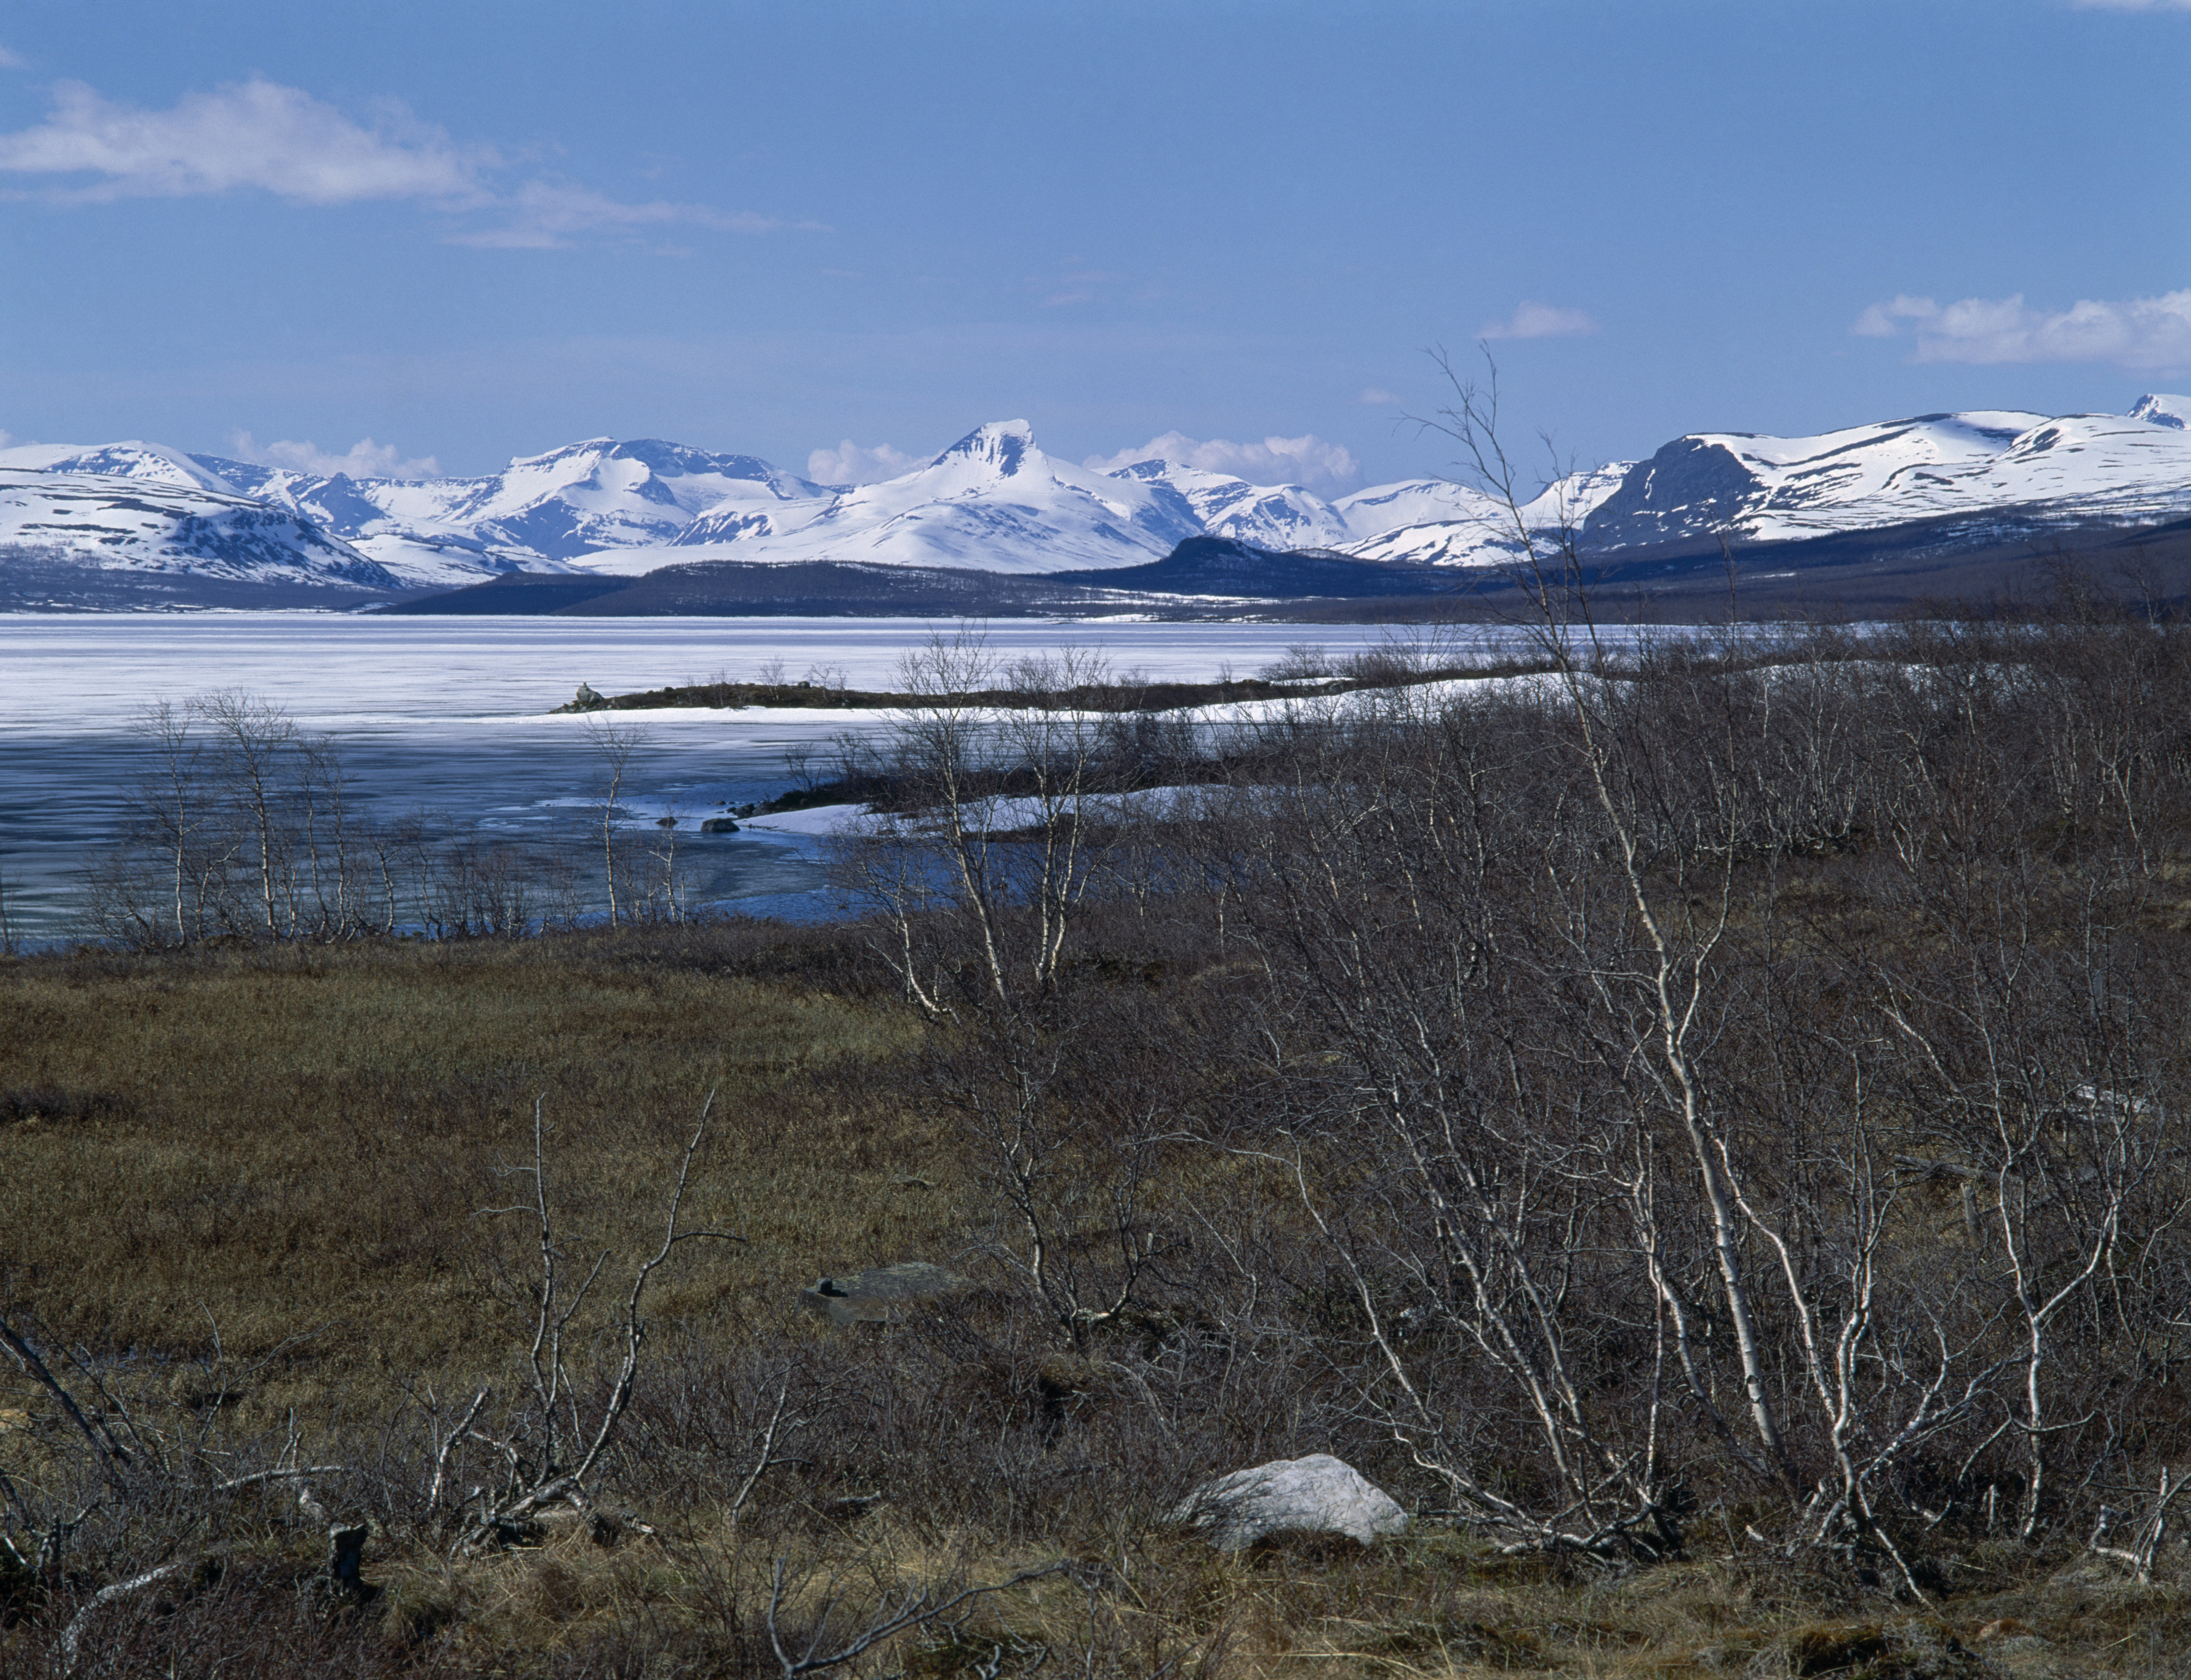 Finland, Lapland, Kilpisjarvi West view Norway, Way of the Four Winds, lake snow capped peaks. (Photo by: Eye Ubiquitous/UIG via Getty Images)